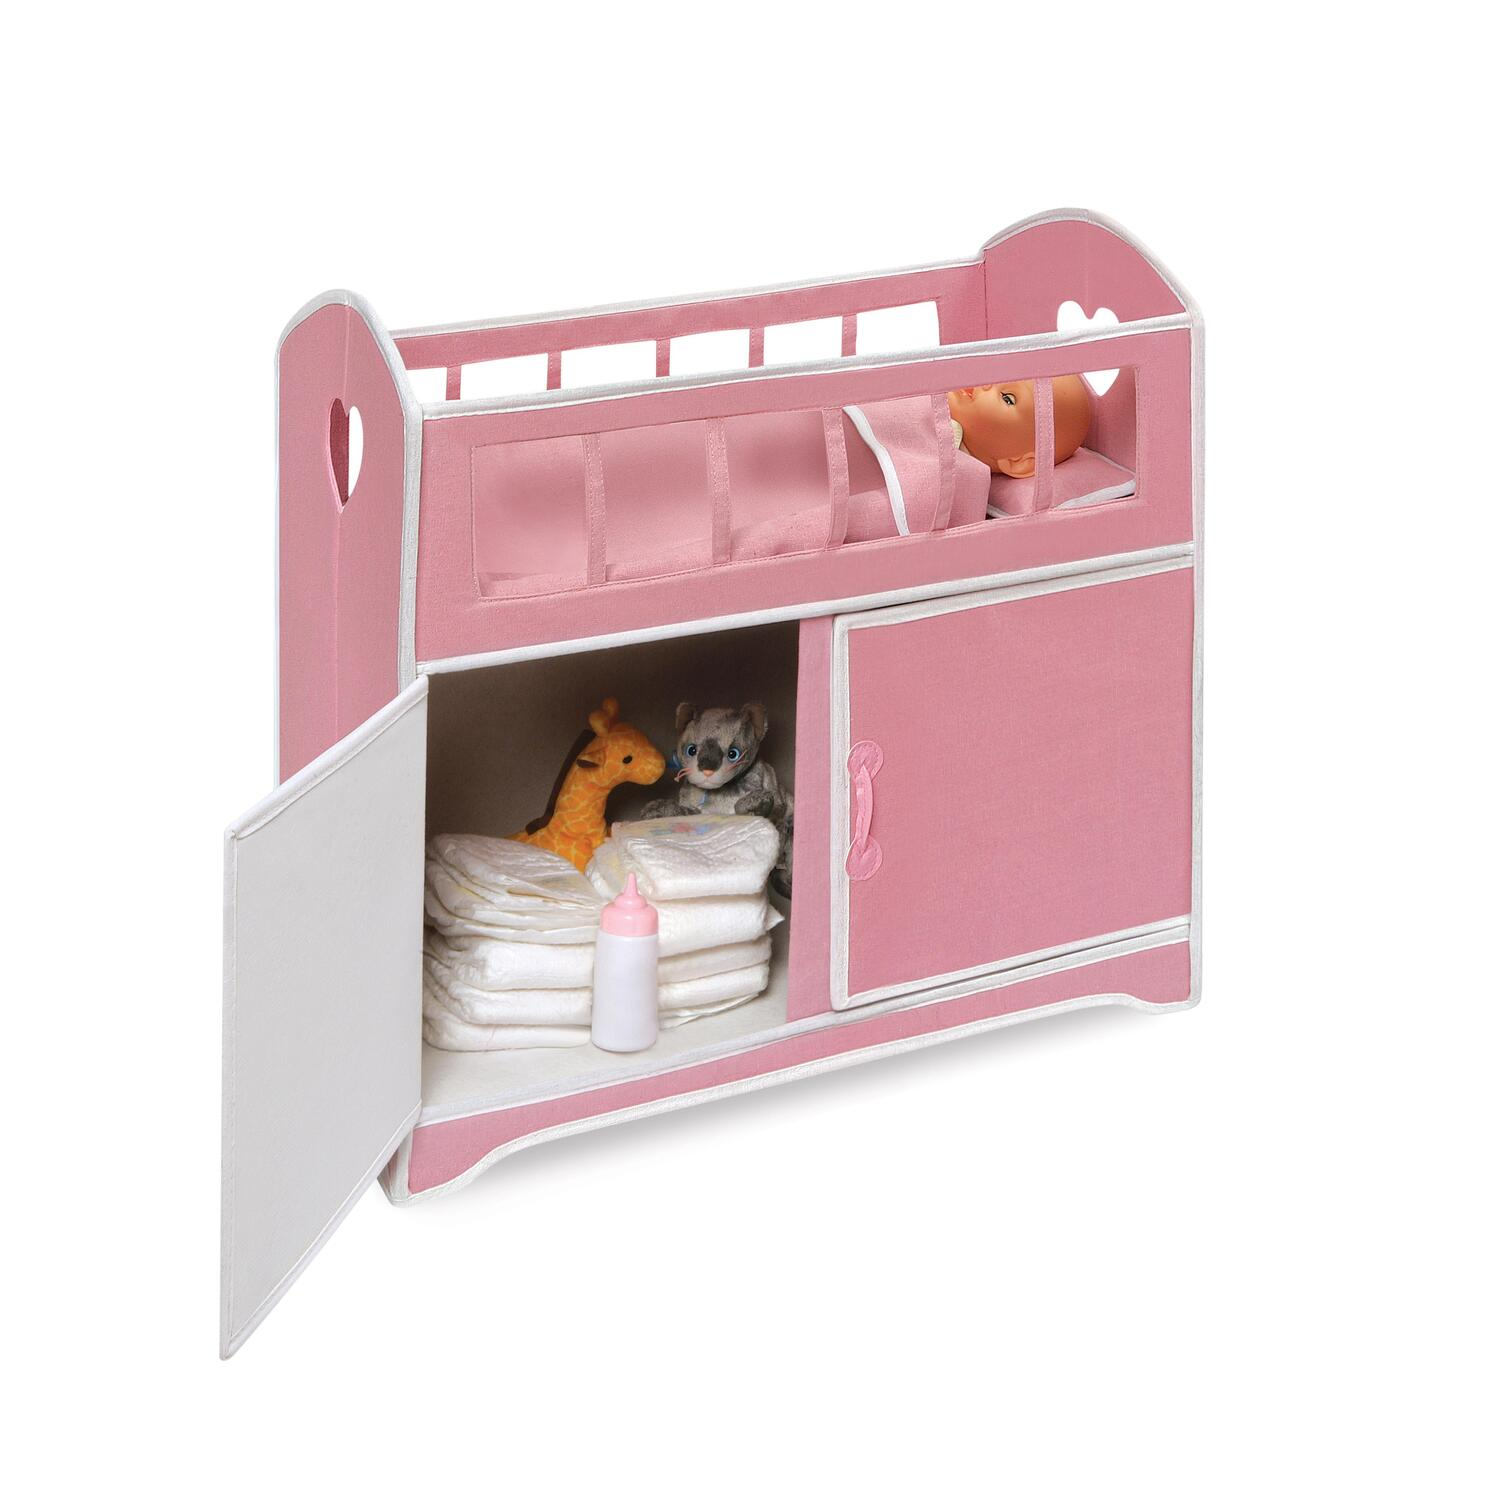 Folding doll furniture set with storage crib high chair and armoire